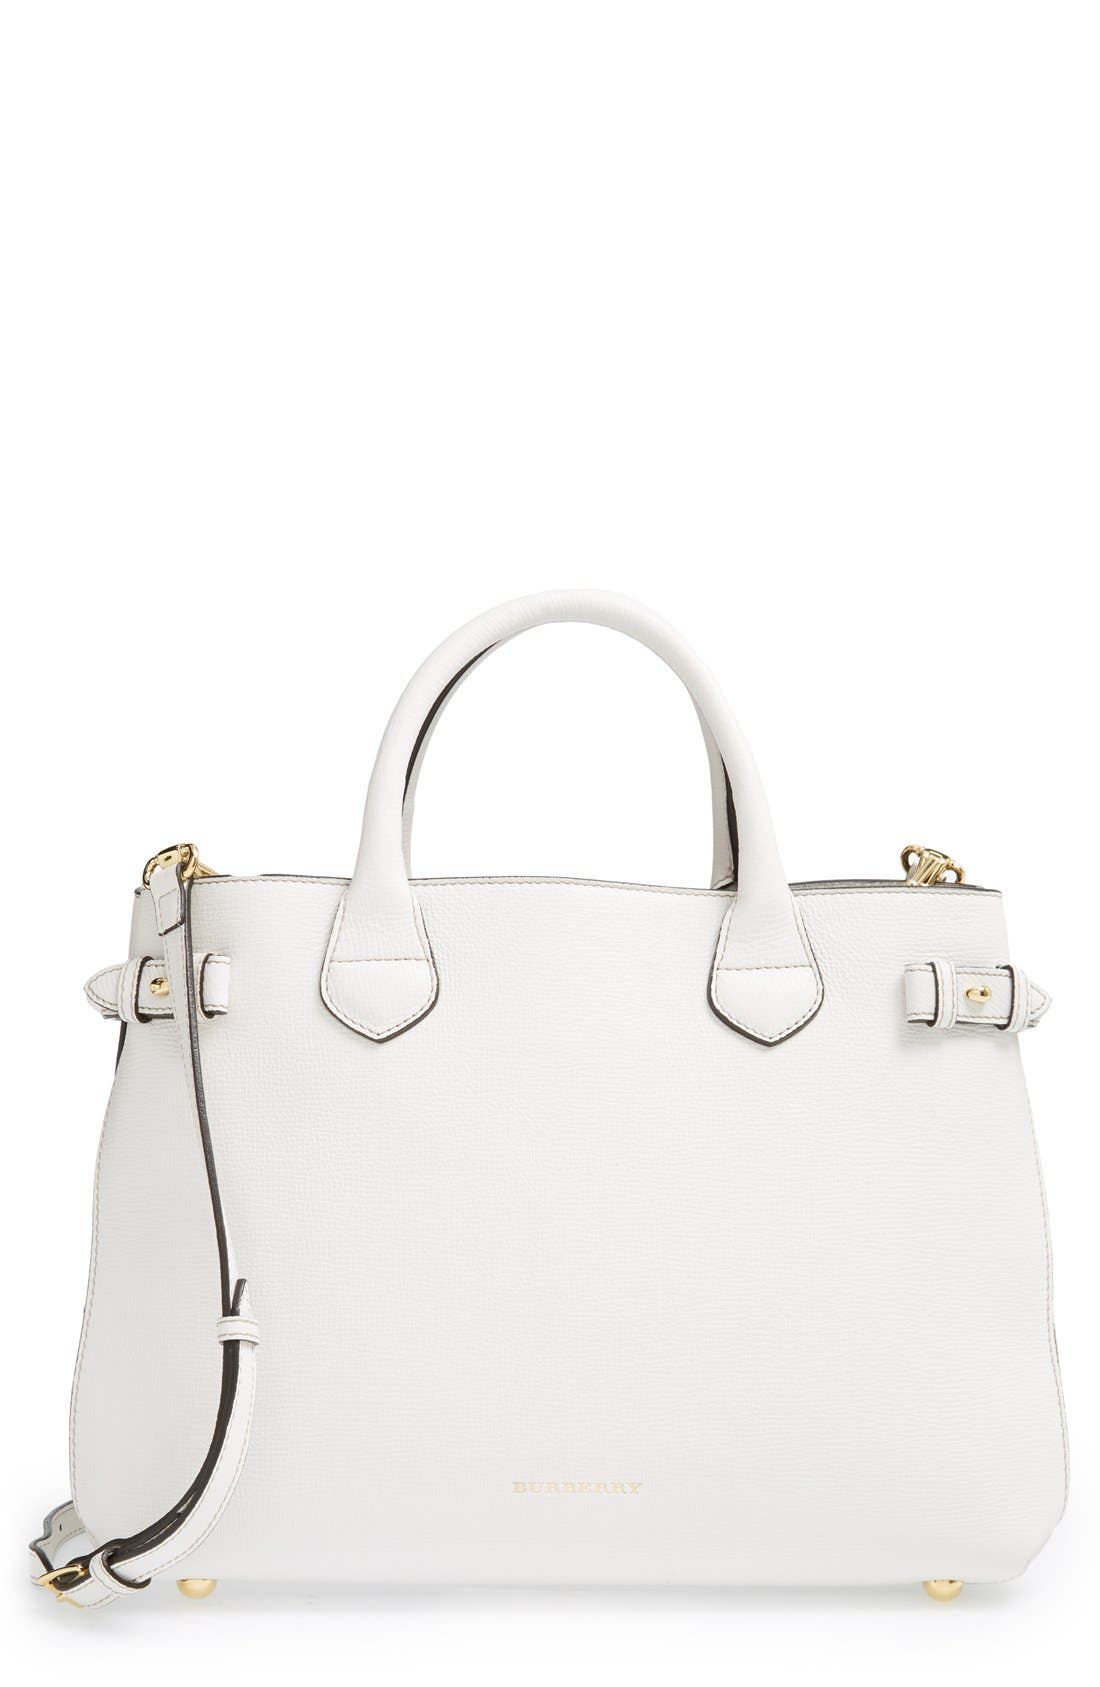 Main Image - Burberry 'Medium Banner' Leather Tote